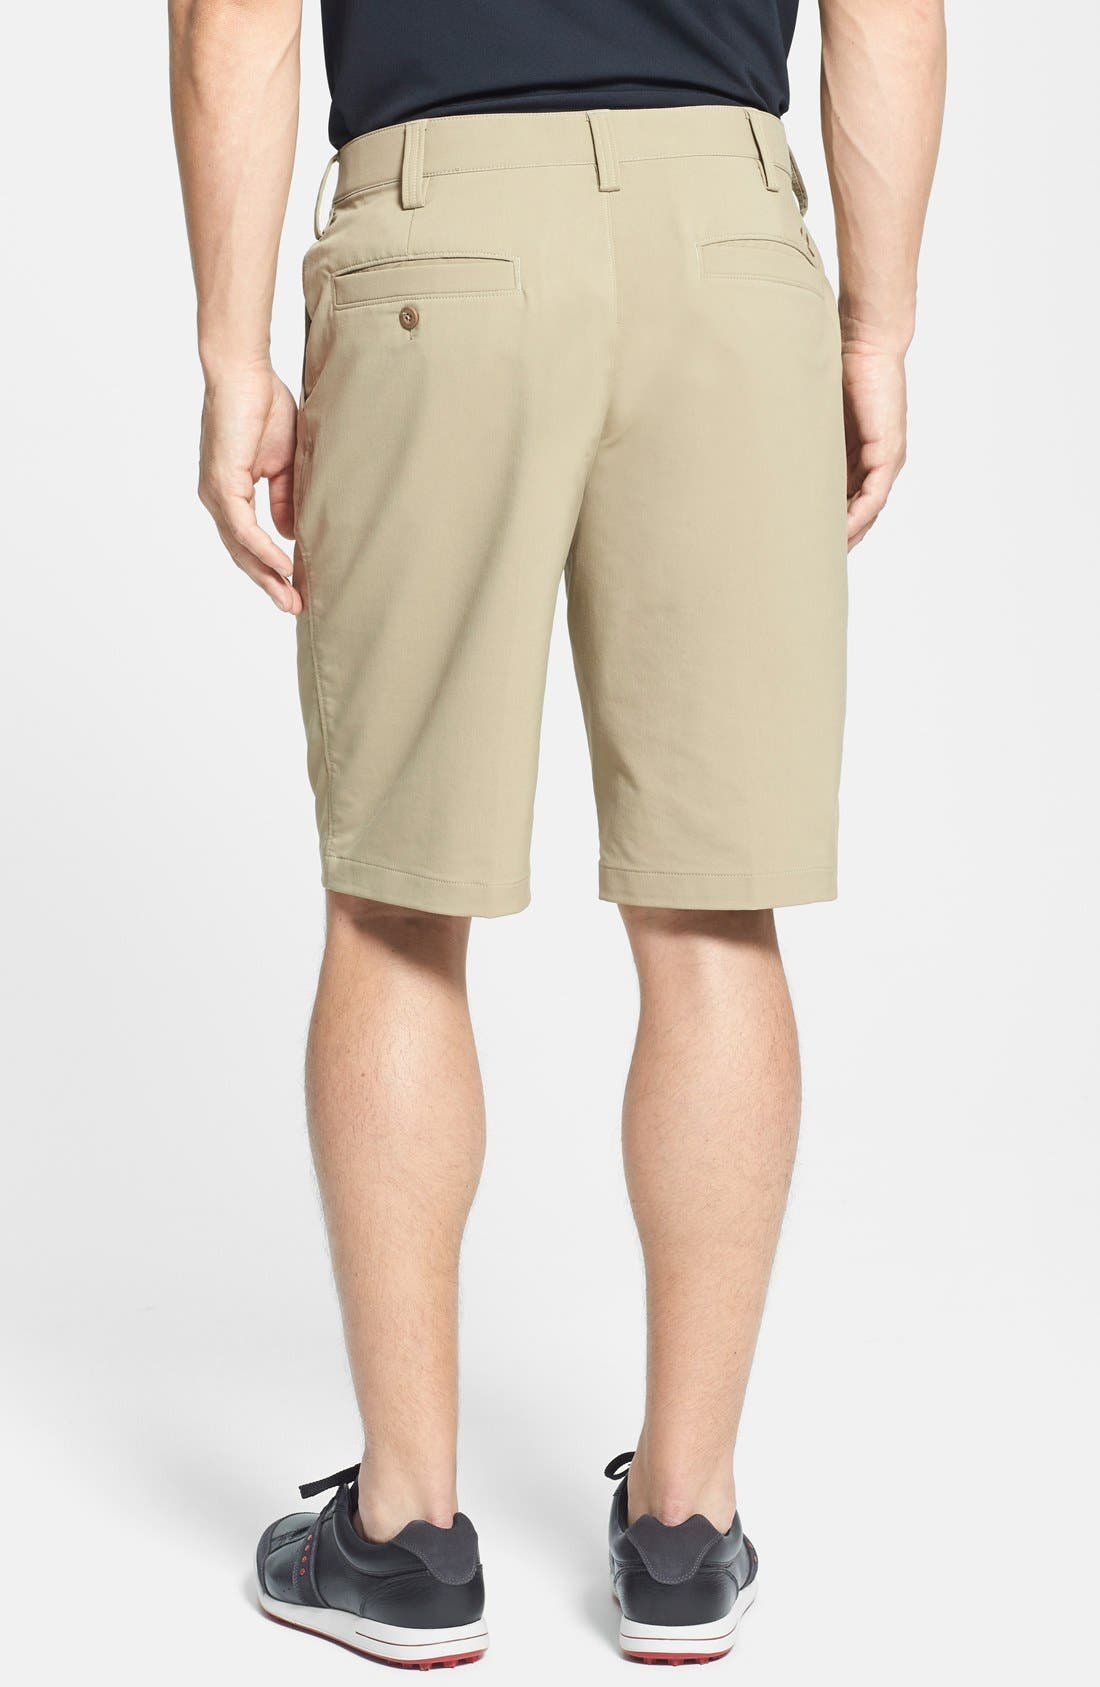 Alternate Image 2  - Under Armour 'Bent Grass 2.0' Woven Golf Shorts